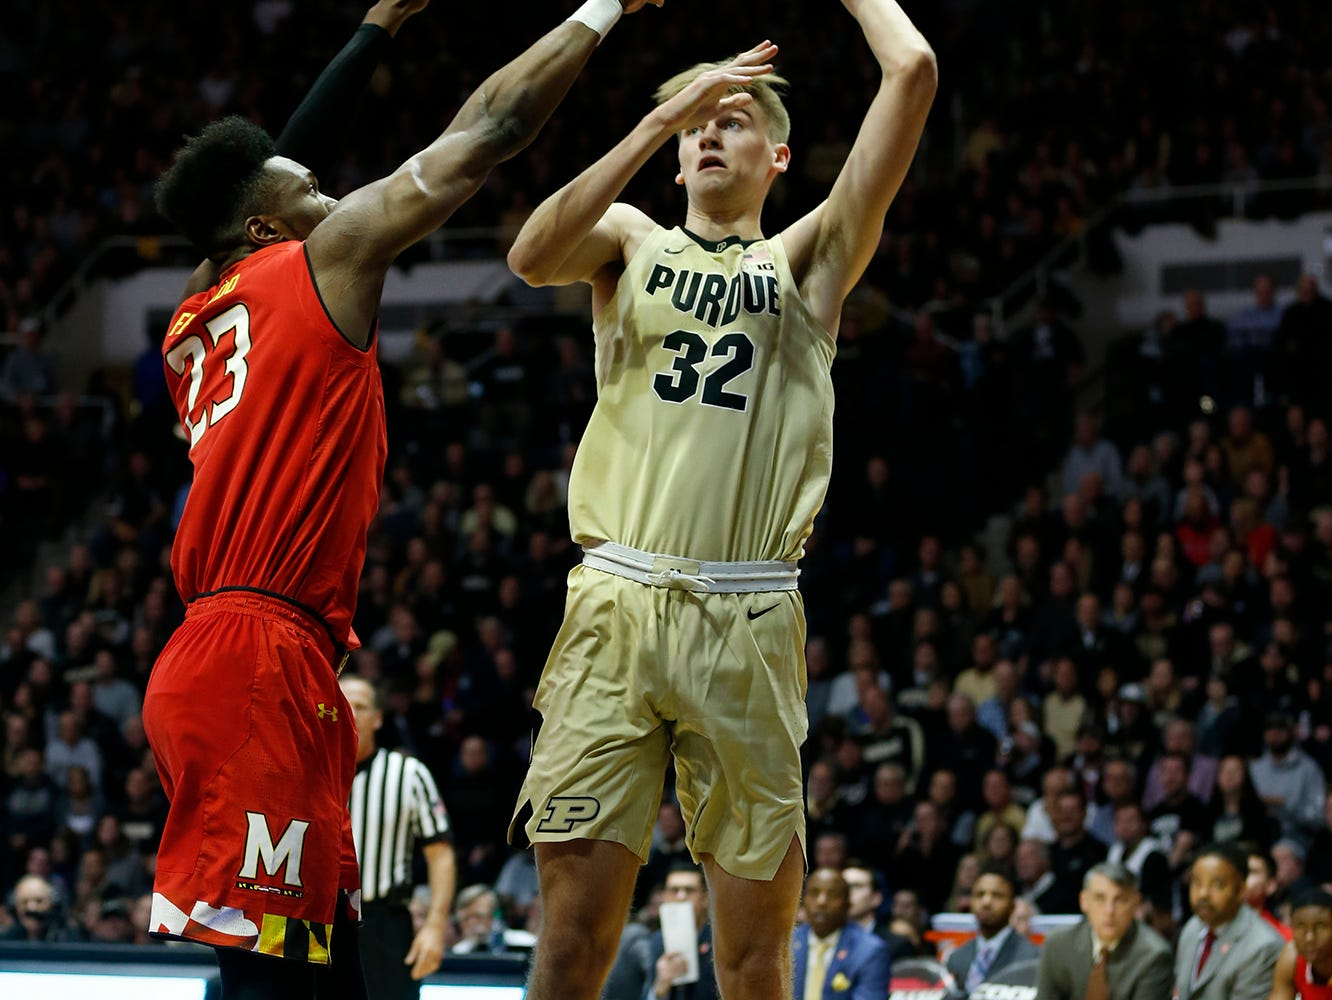 Thursday, December 6, 2018, at Mackey Arena. Purdue defeated Maryland 62-60. Purdue defeated Maryland 62-60.